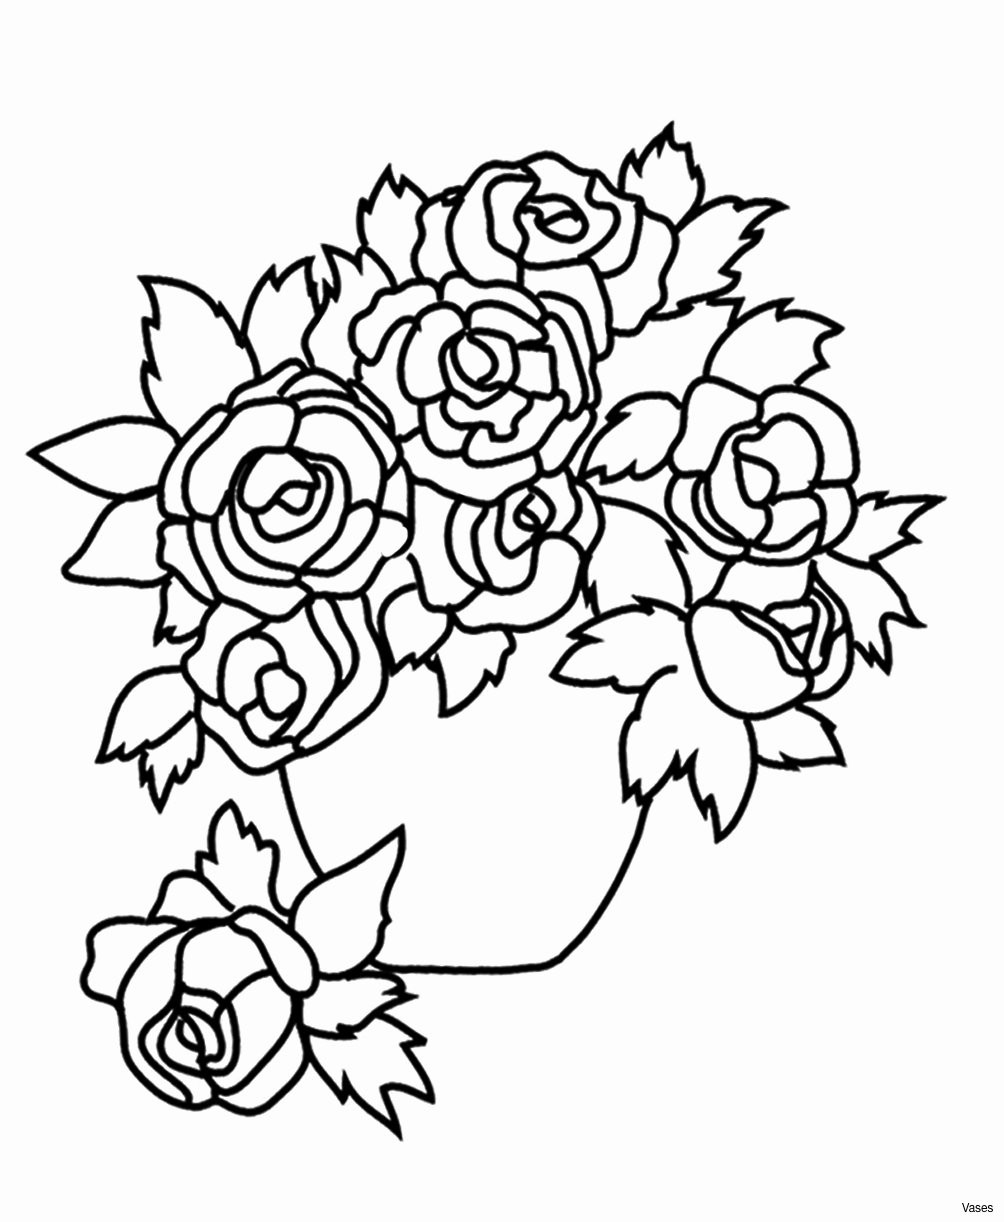 orange flowers in vase of unique cool vases flower vase coloring page pages flowers in a top i for unique cool vases flower vase coloring page pages flowers in a top i 0d